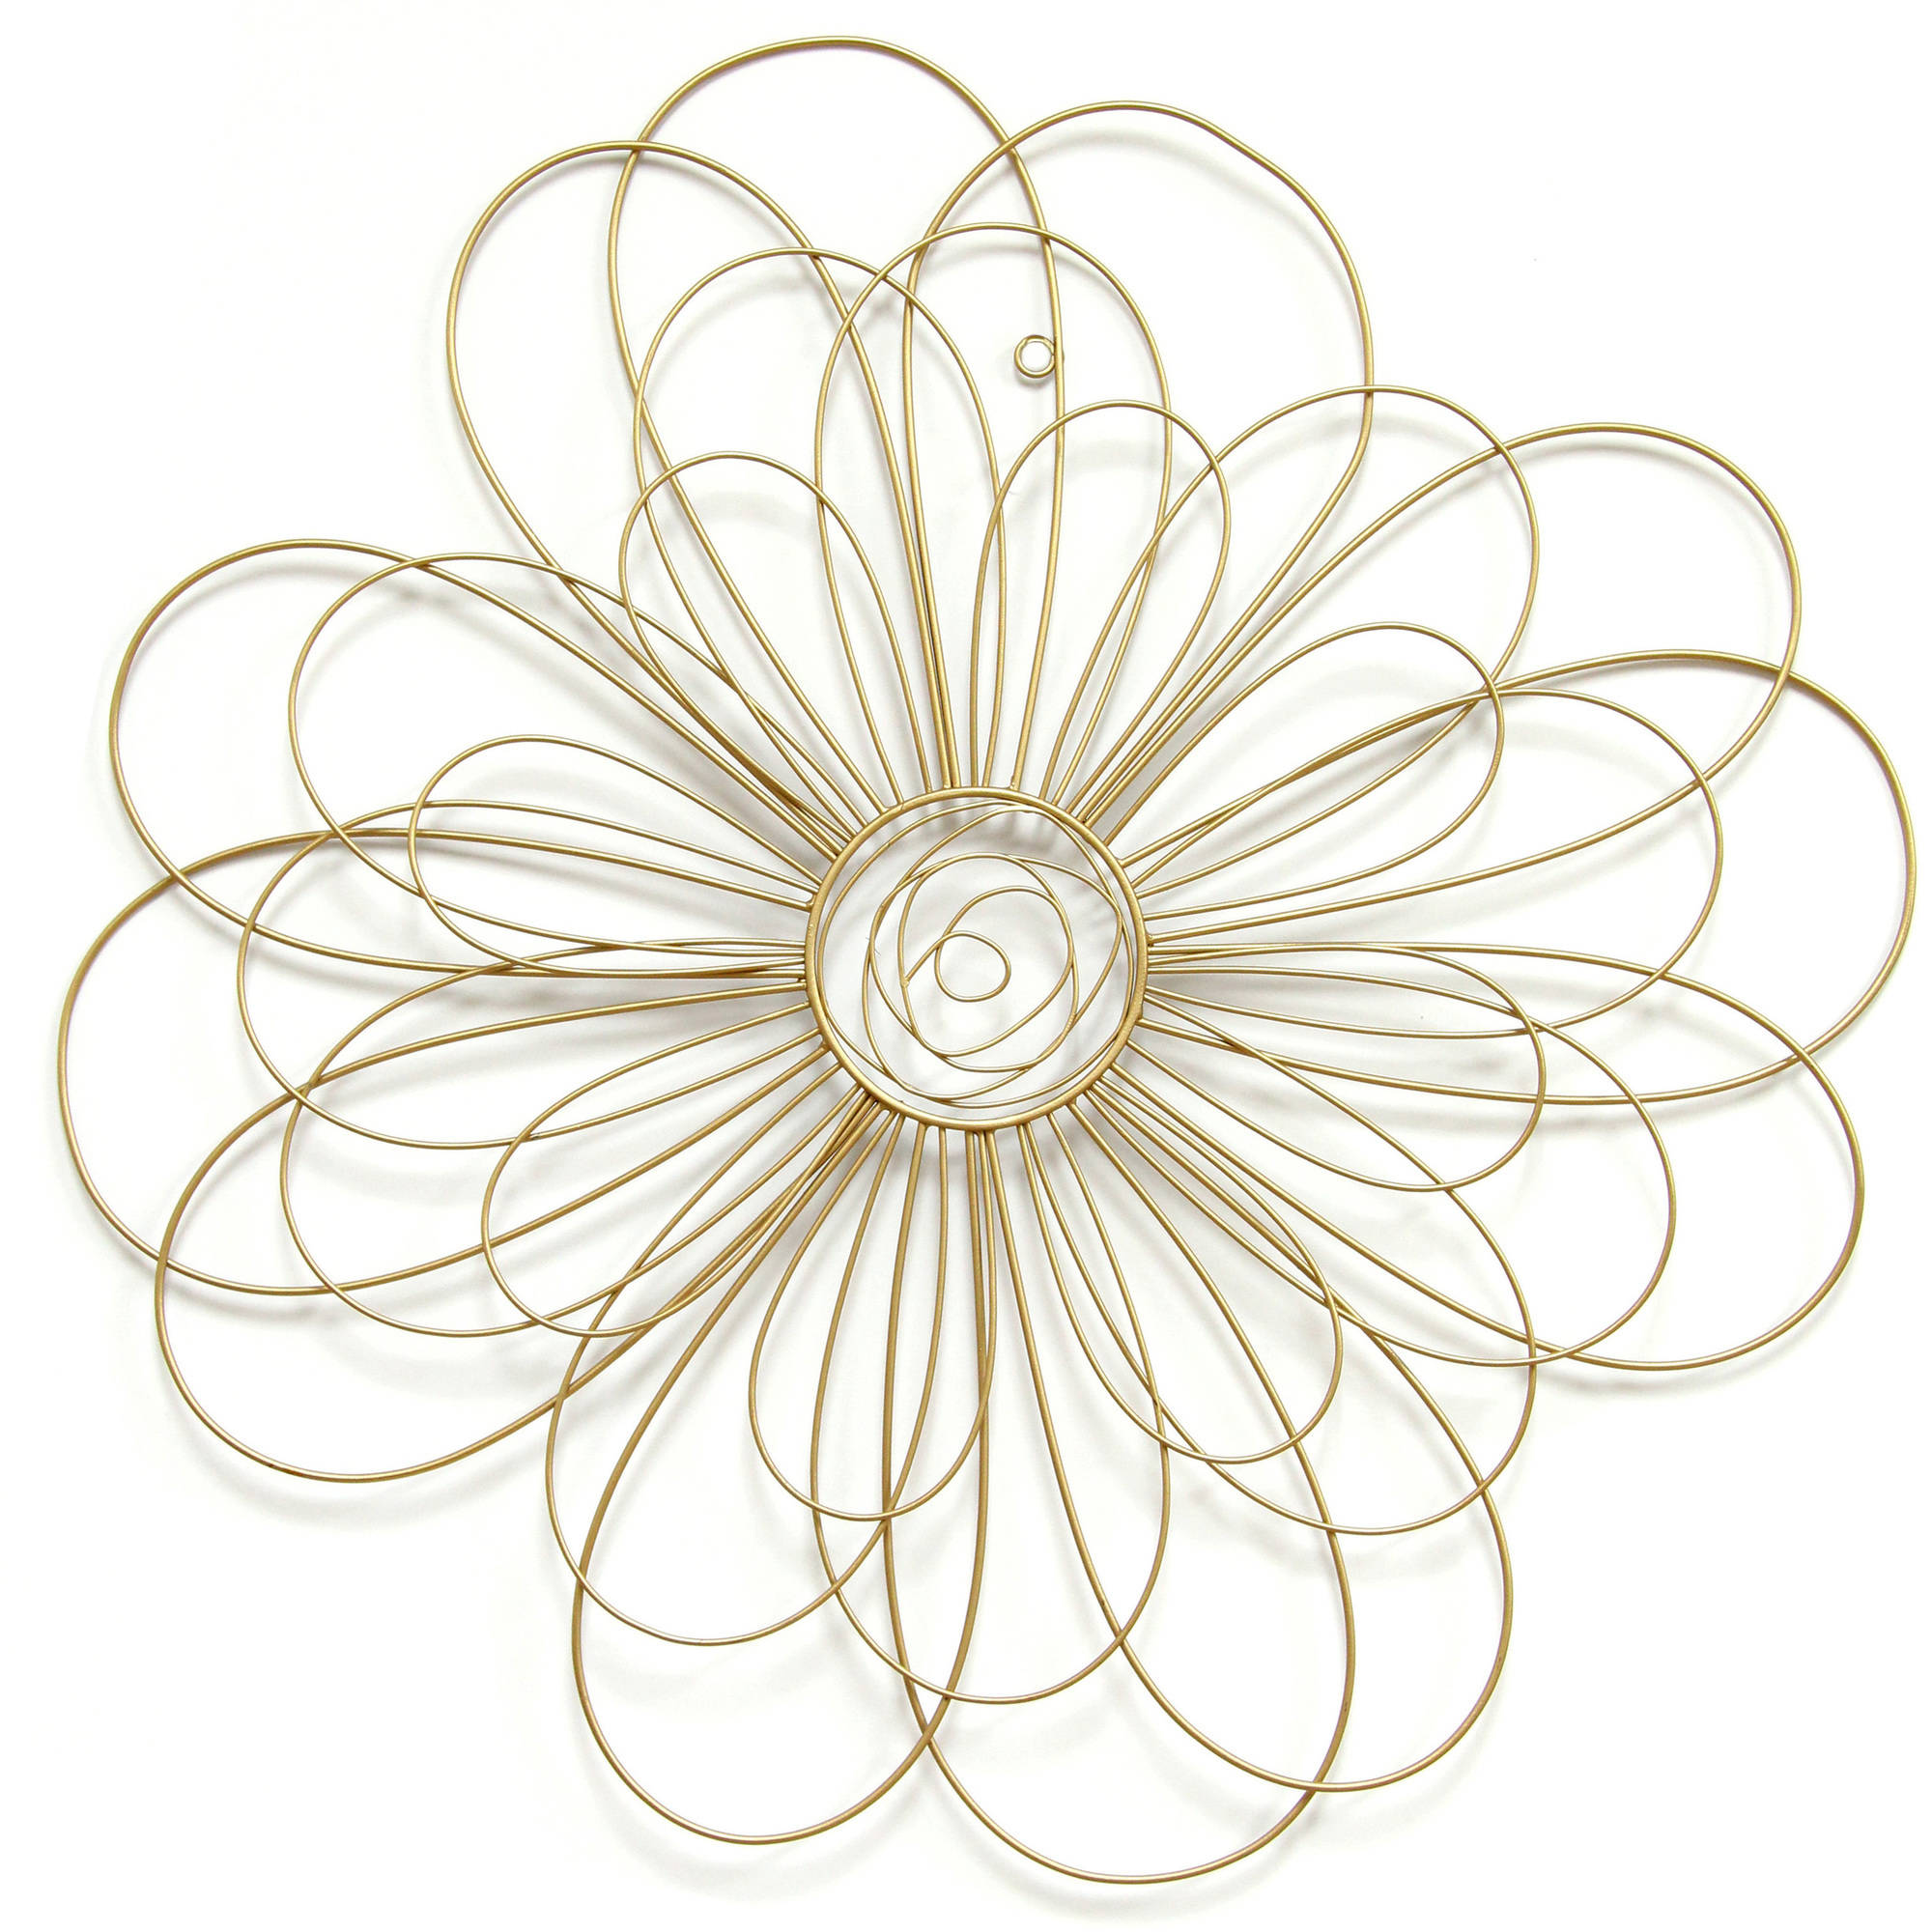 Stratton Home Gold Wire Flower Wall Decor by Stratton Home Decor